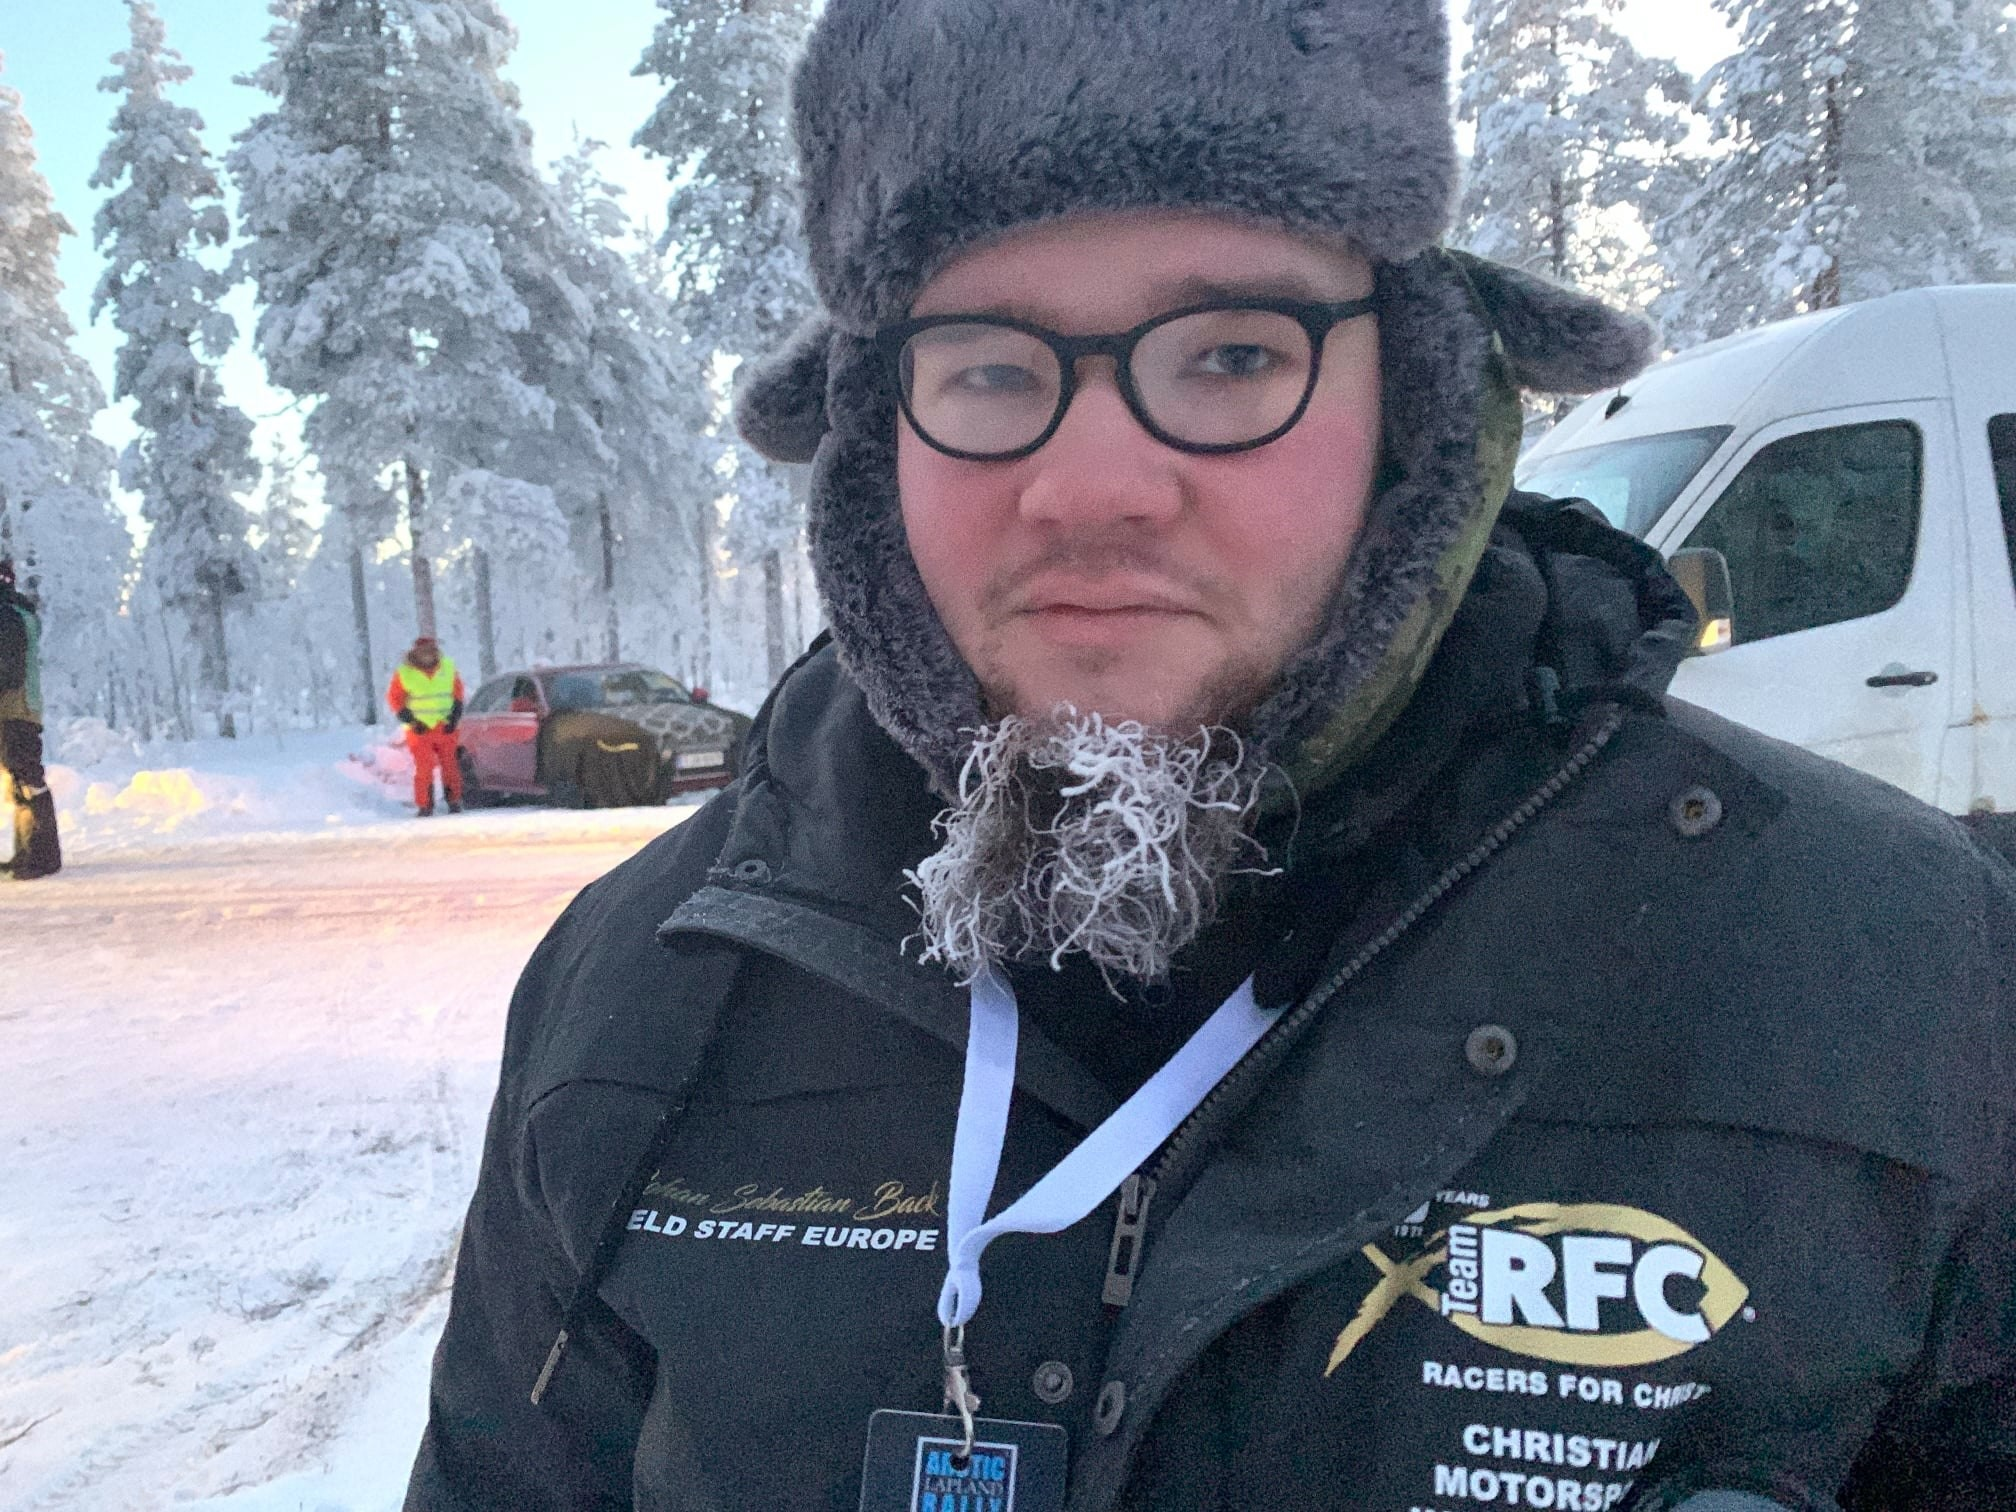 Field staff Johann Sebastian poses for a picture during an snowy event.